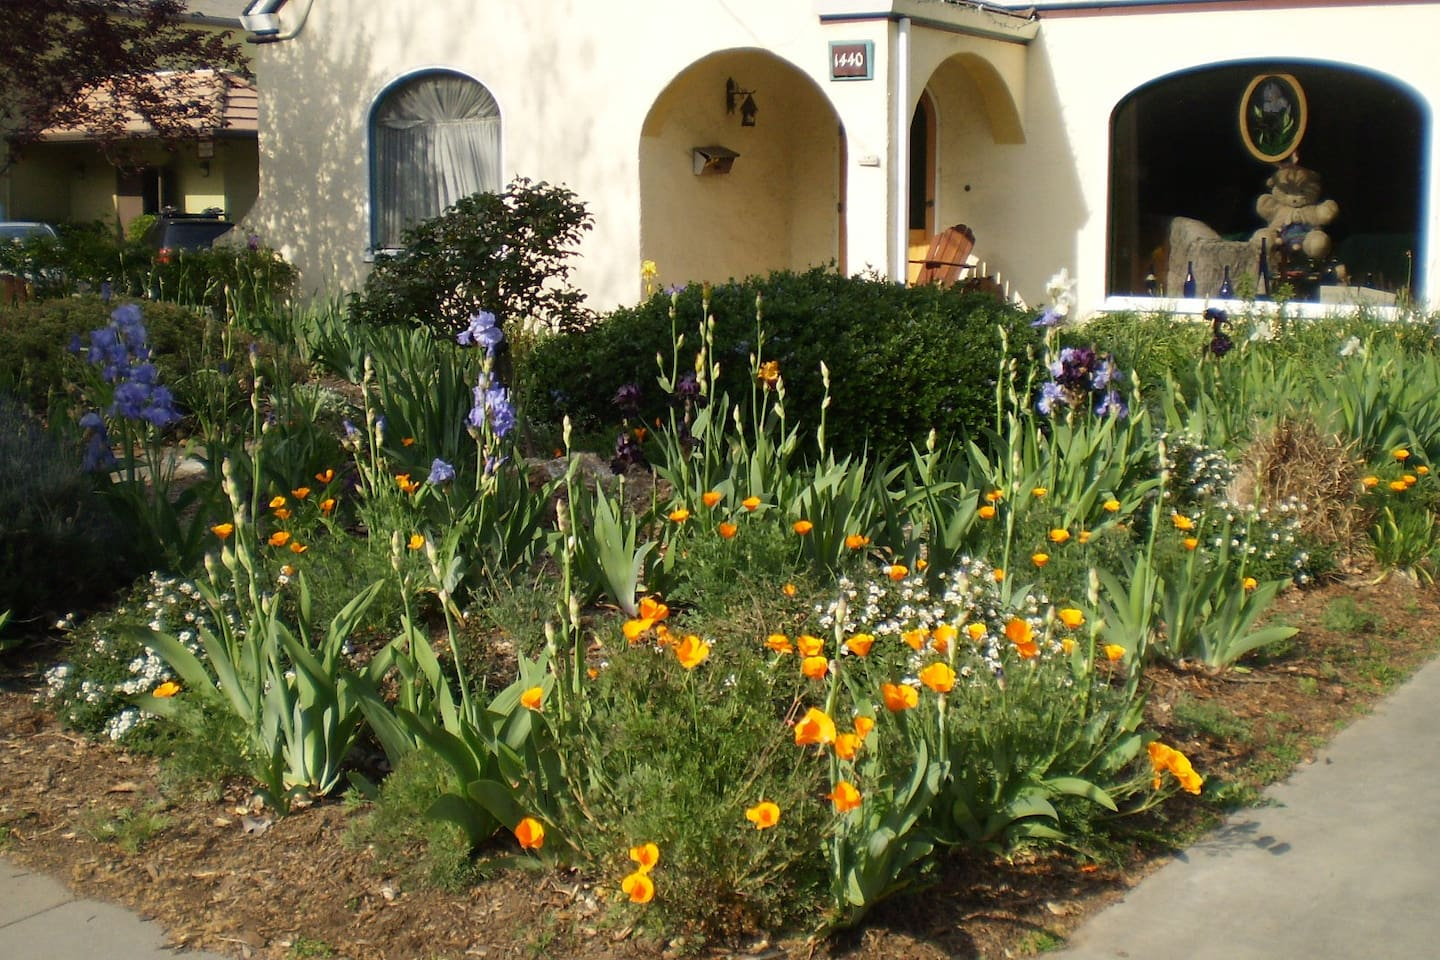 Front yard abloom in Spring to welcome you. Your room is on the left with the arched window.